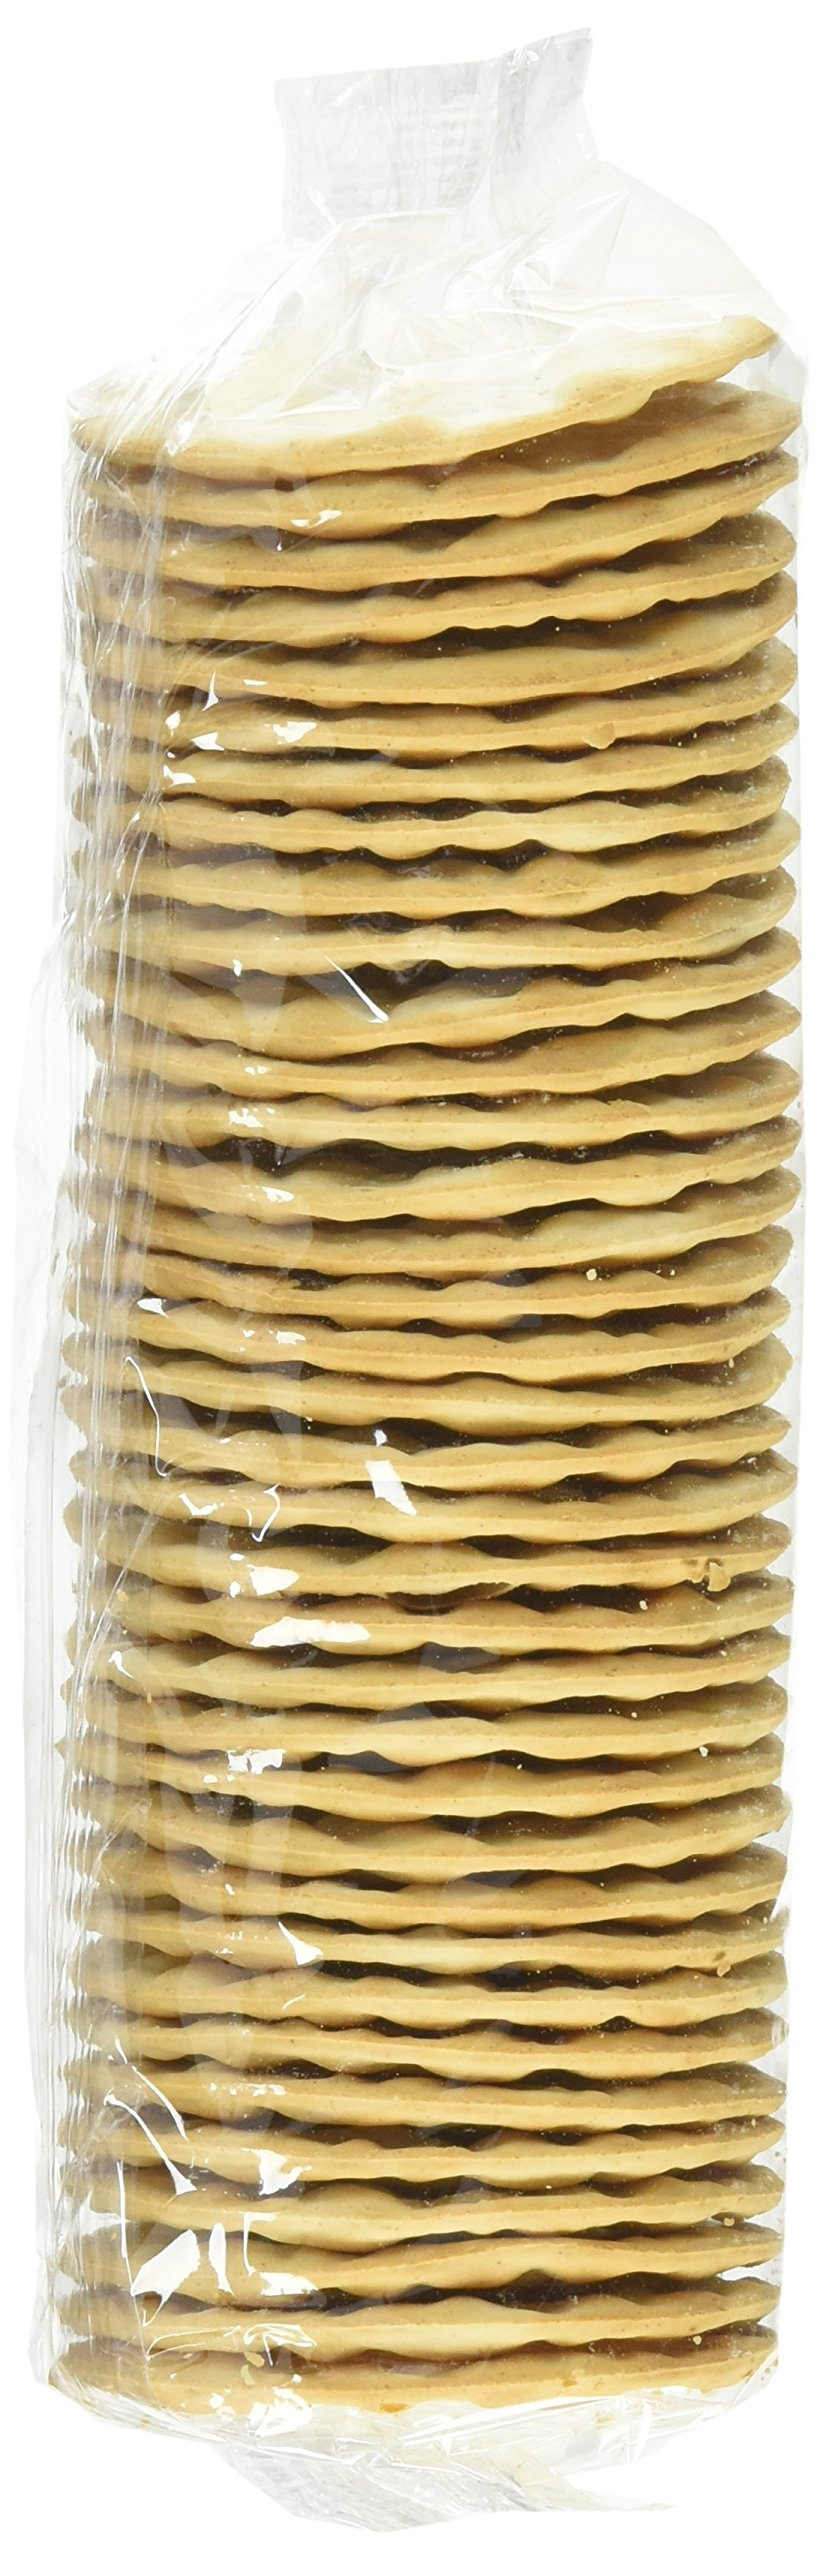 Carr's Table Water Banquet Crackers Bite Size, 24 Count by Carr's